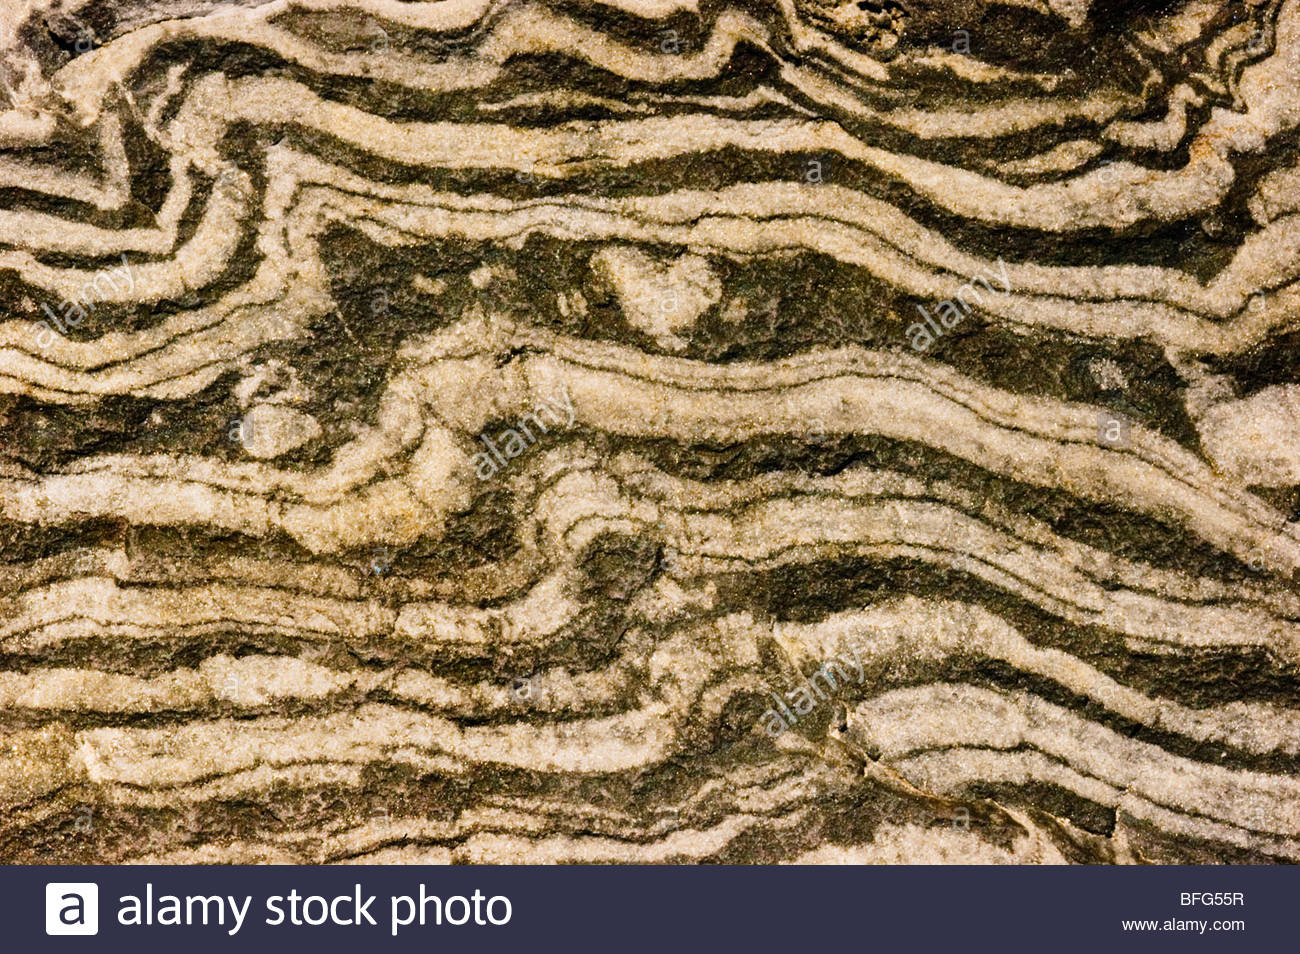 Oldest surface rock, Naturalis the National Museum of Natural History, Leiden, Netherlands - Stock Image